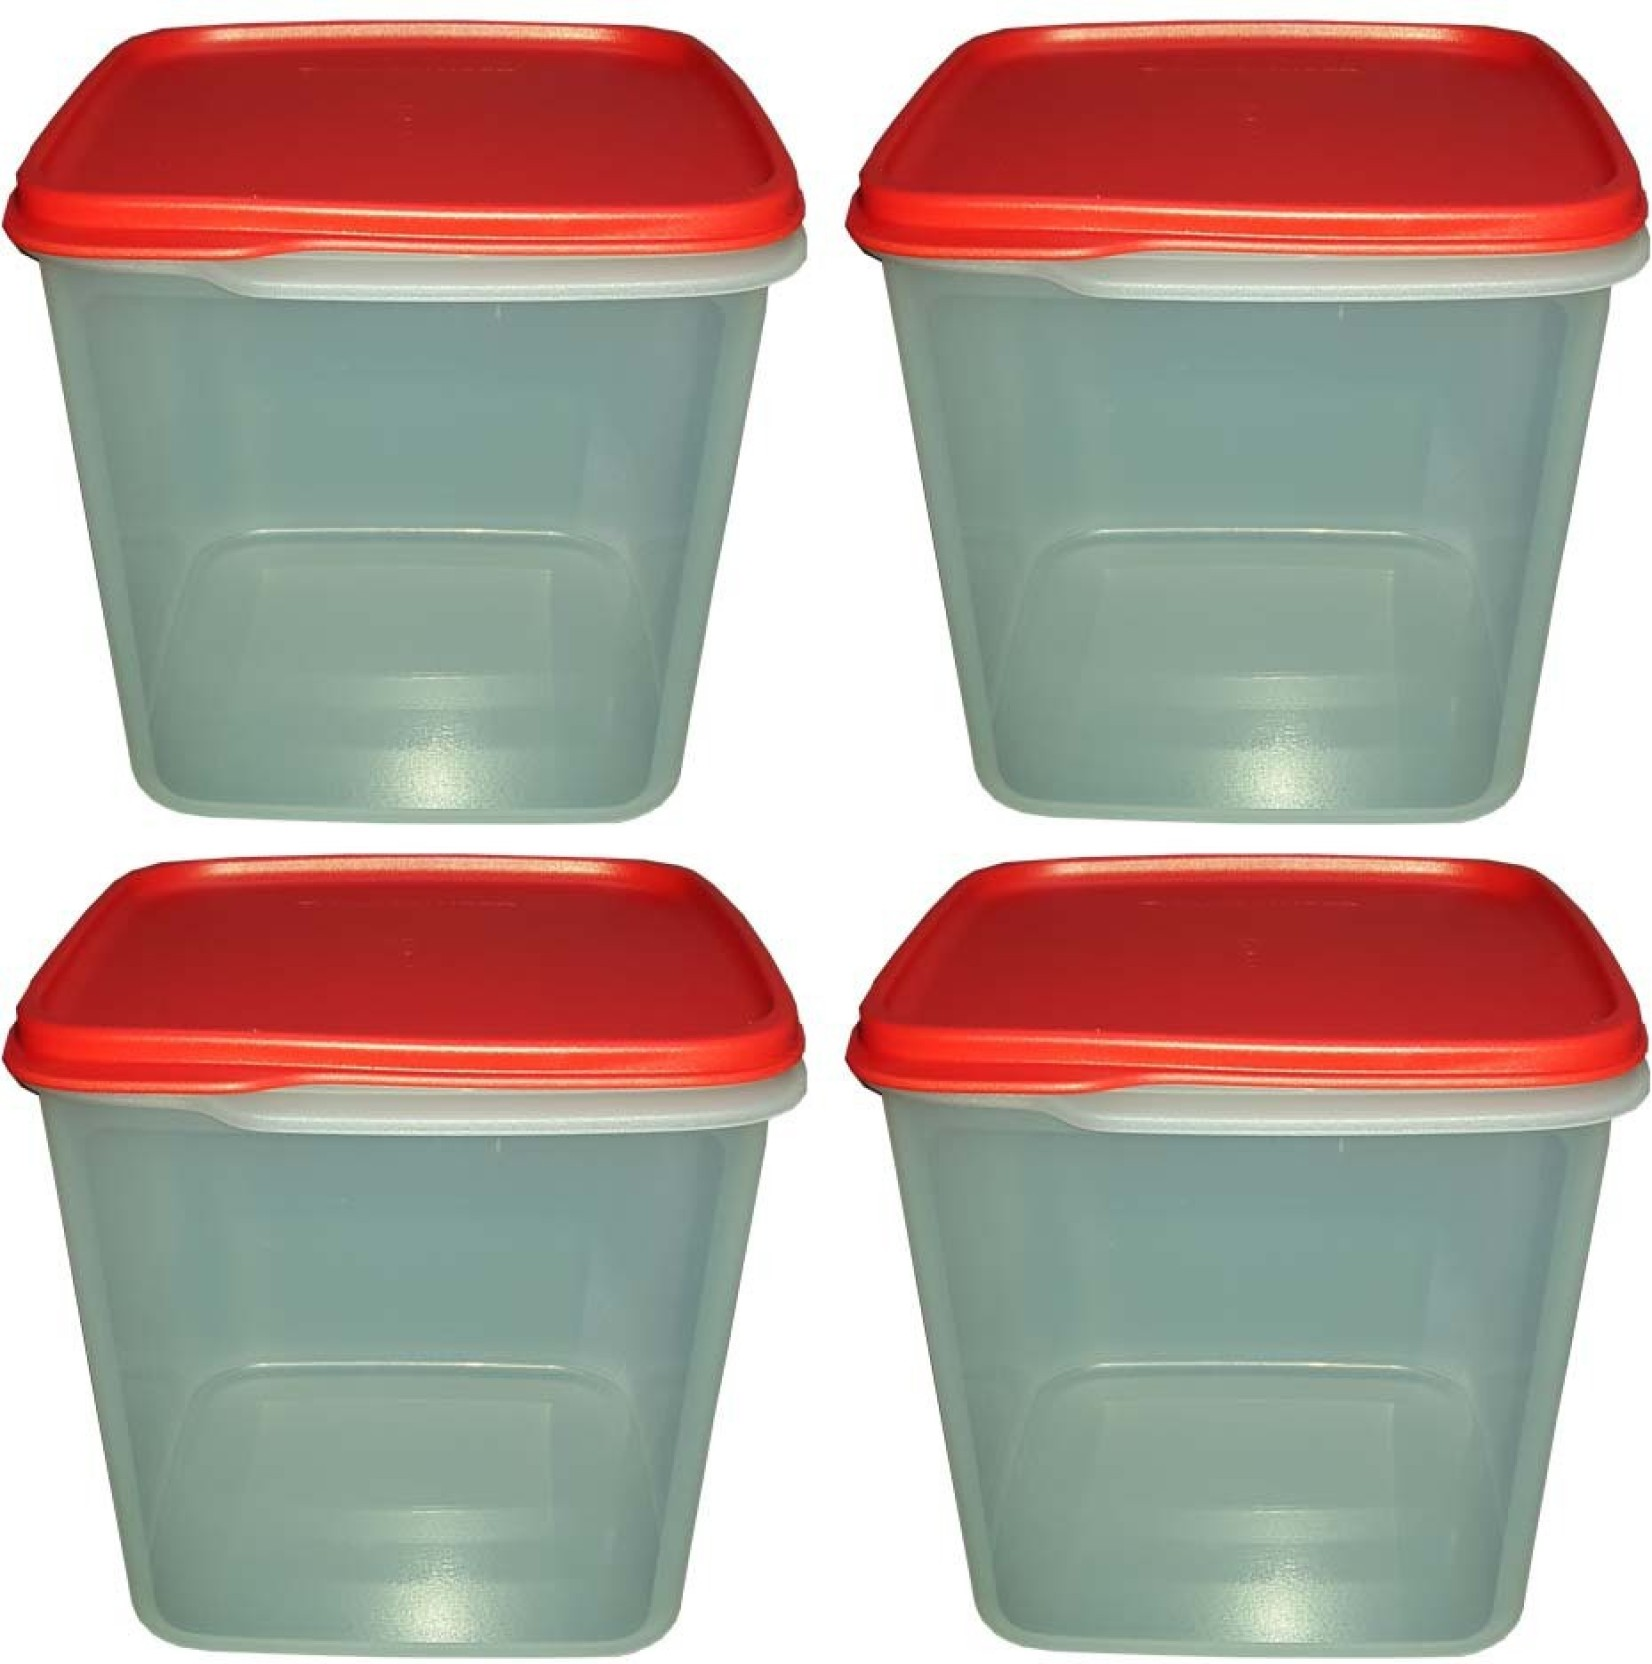 Tupperware - 5.4 L Plastic Grocery Container Price in India - Buy ...